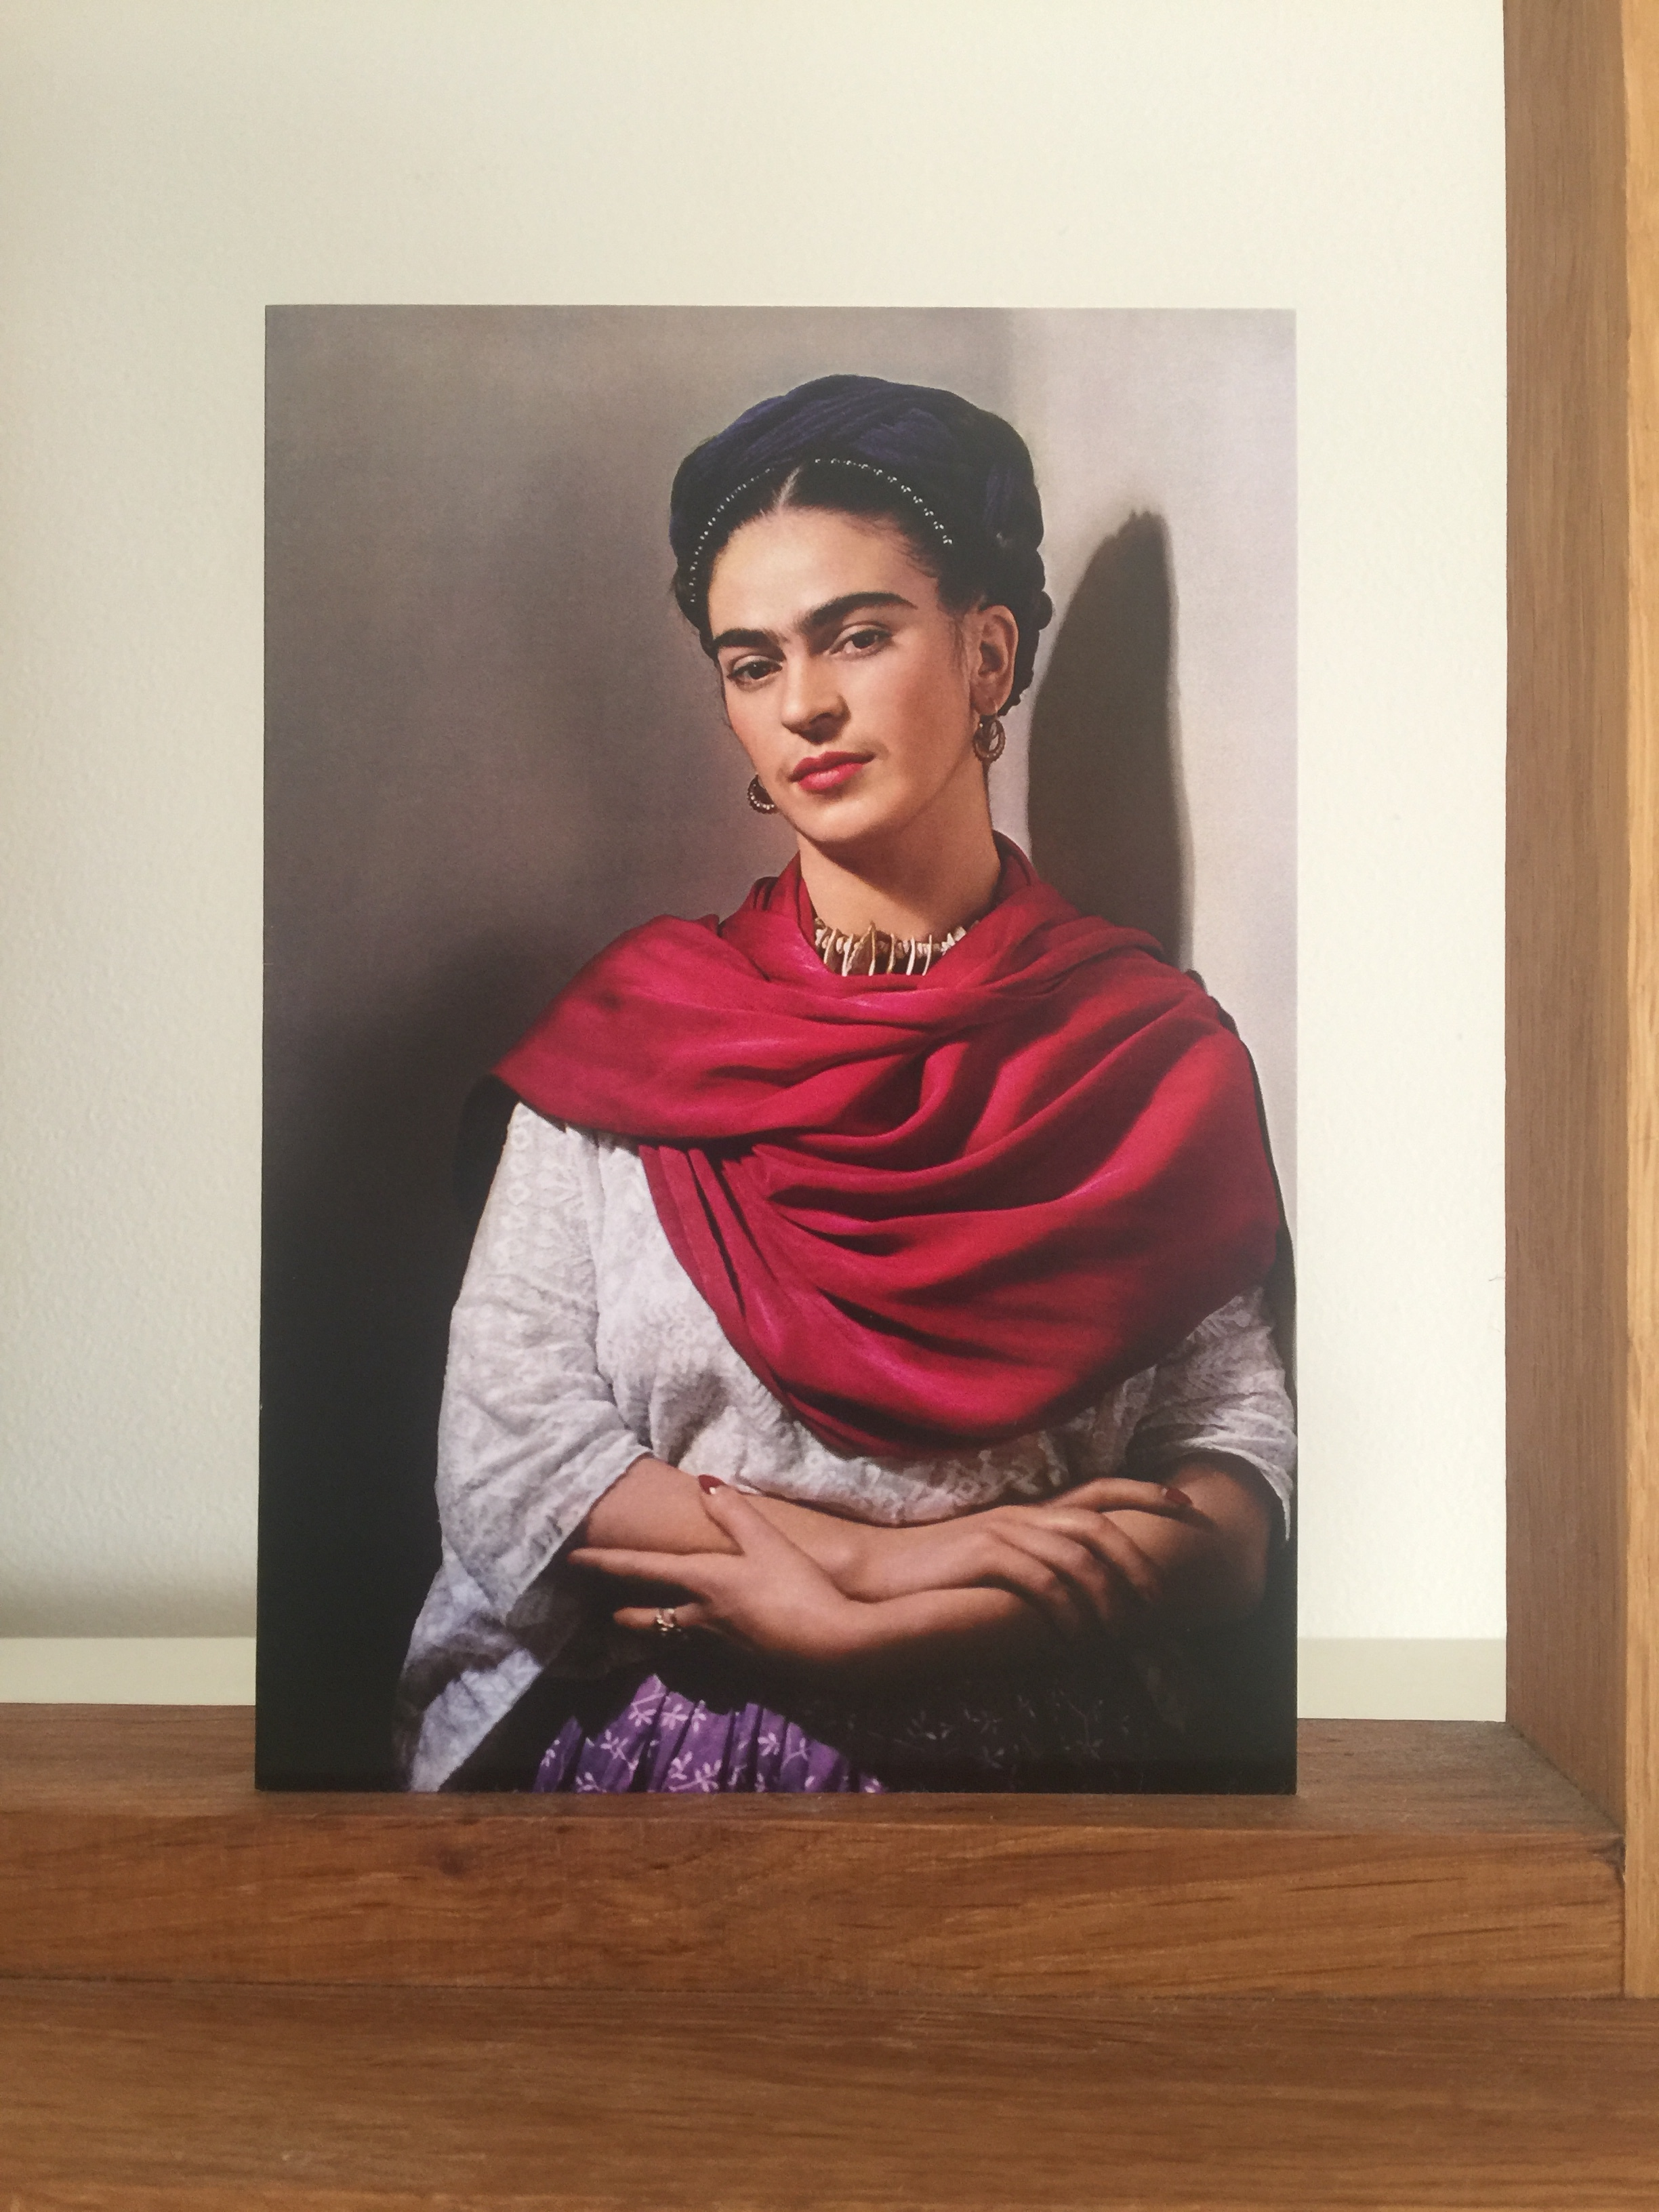 Frida - by Nickolas Murray, wow!